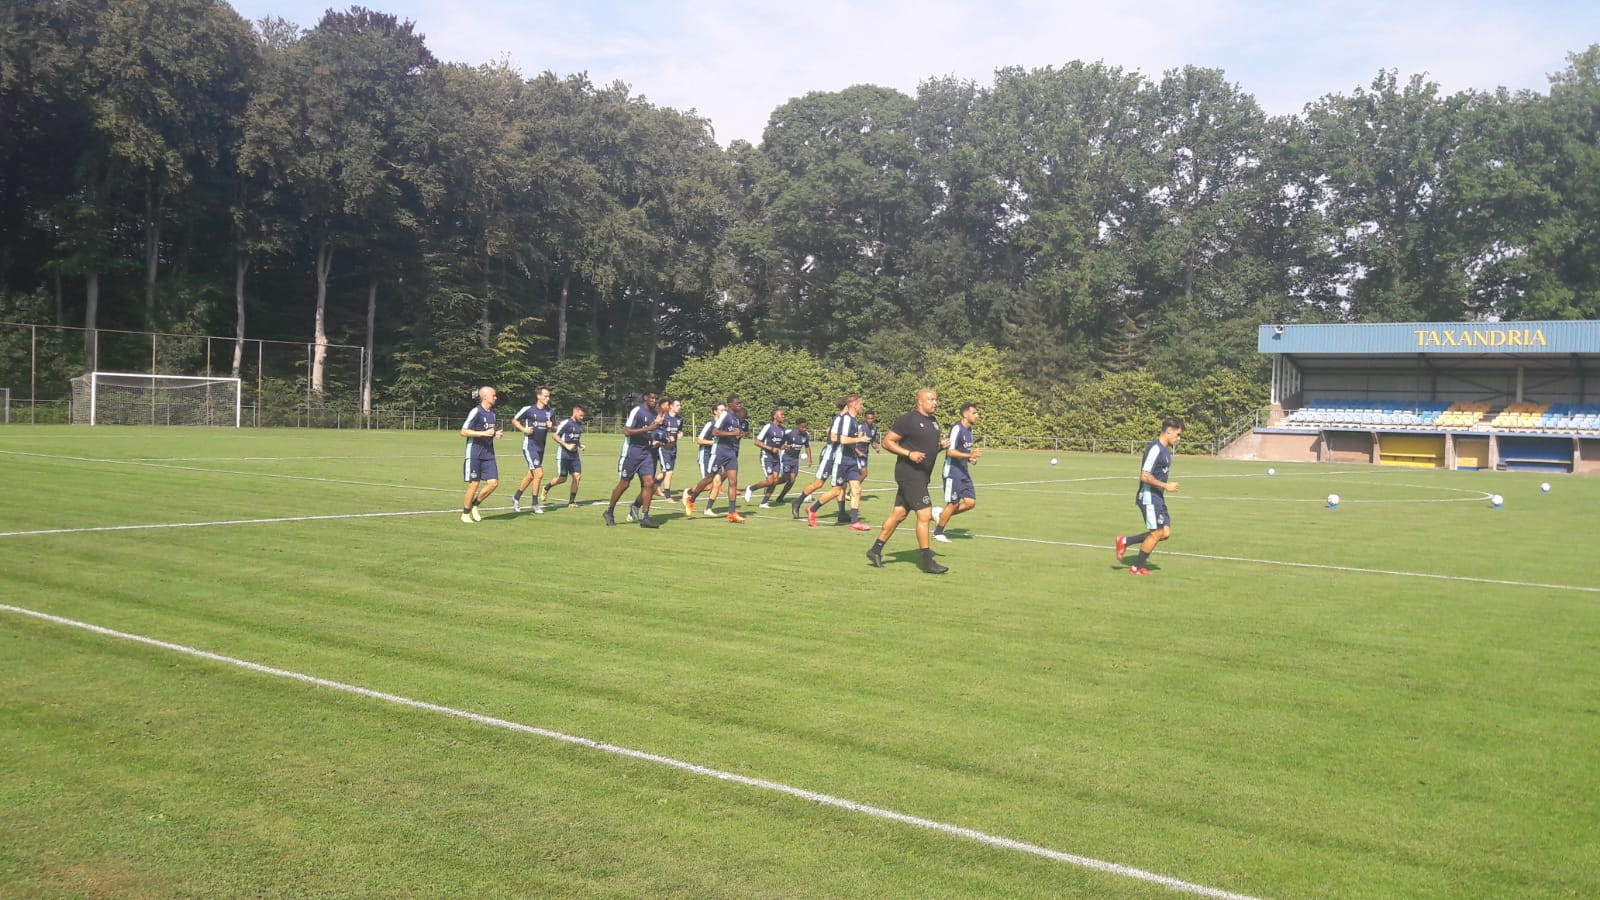 Willem II op trainingskamp in Oisterwijk.